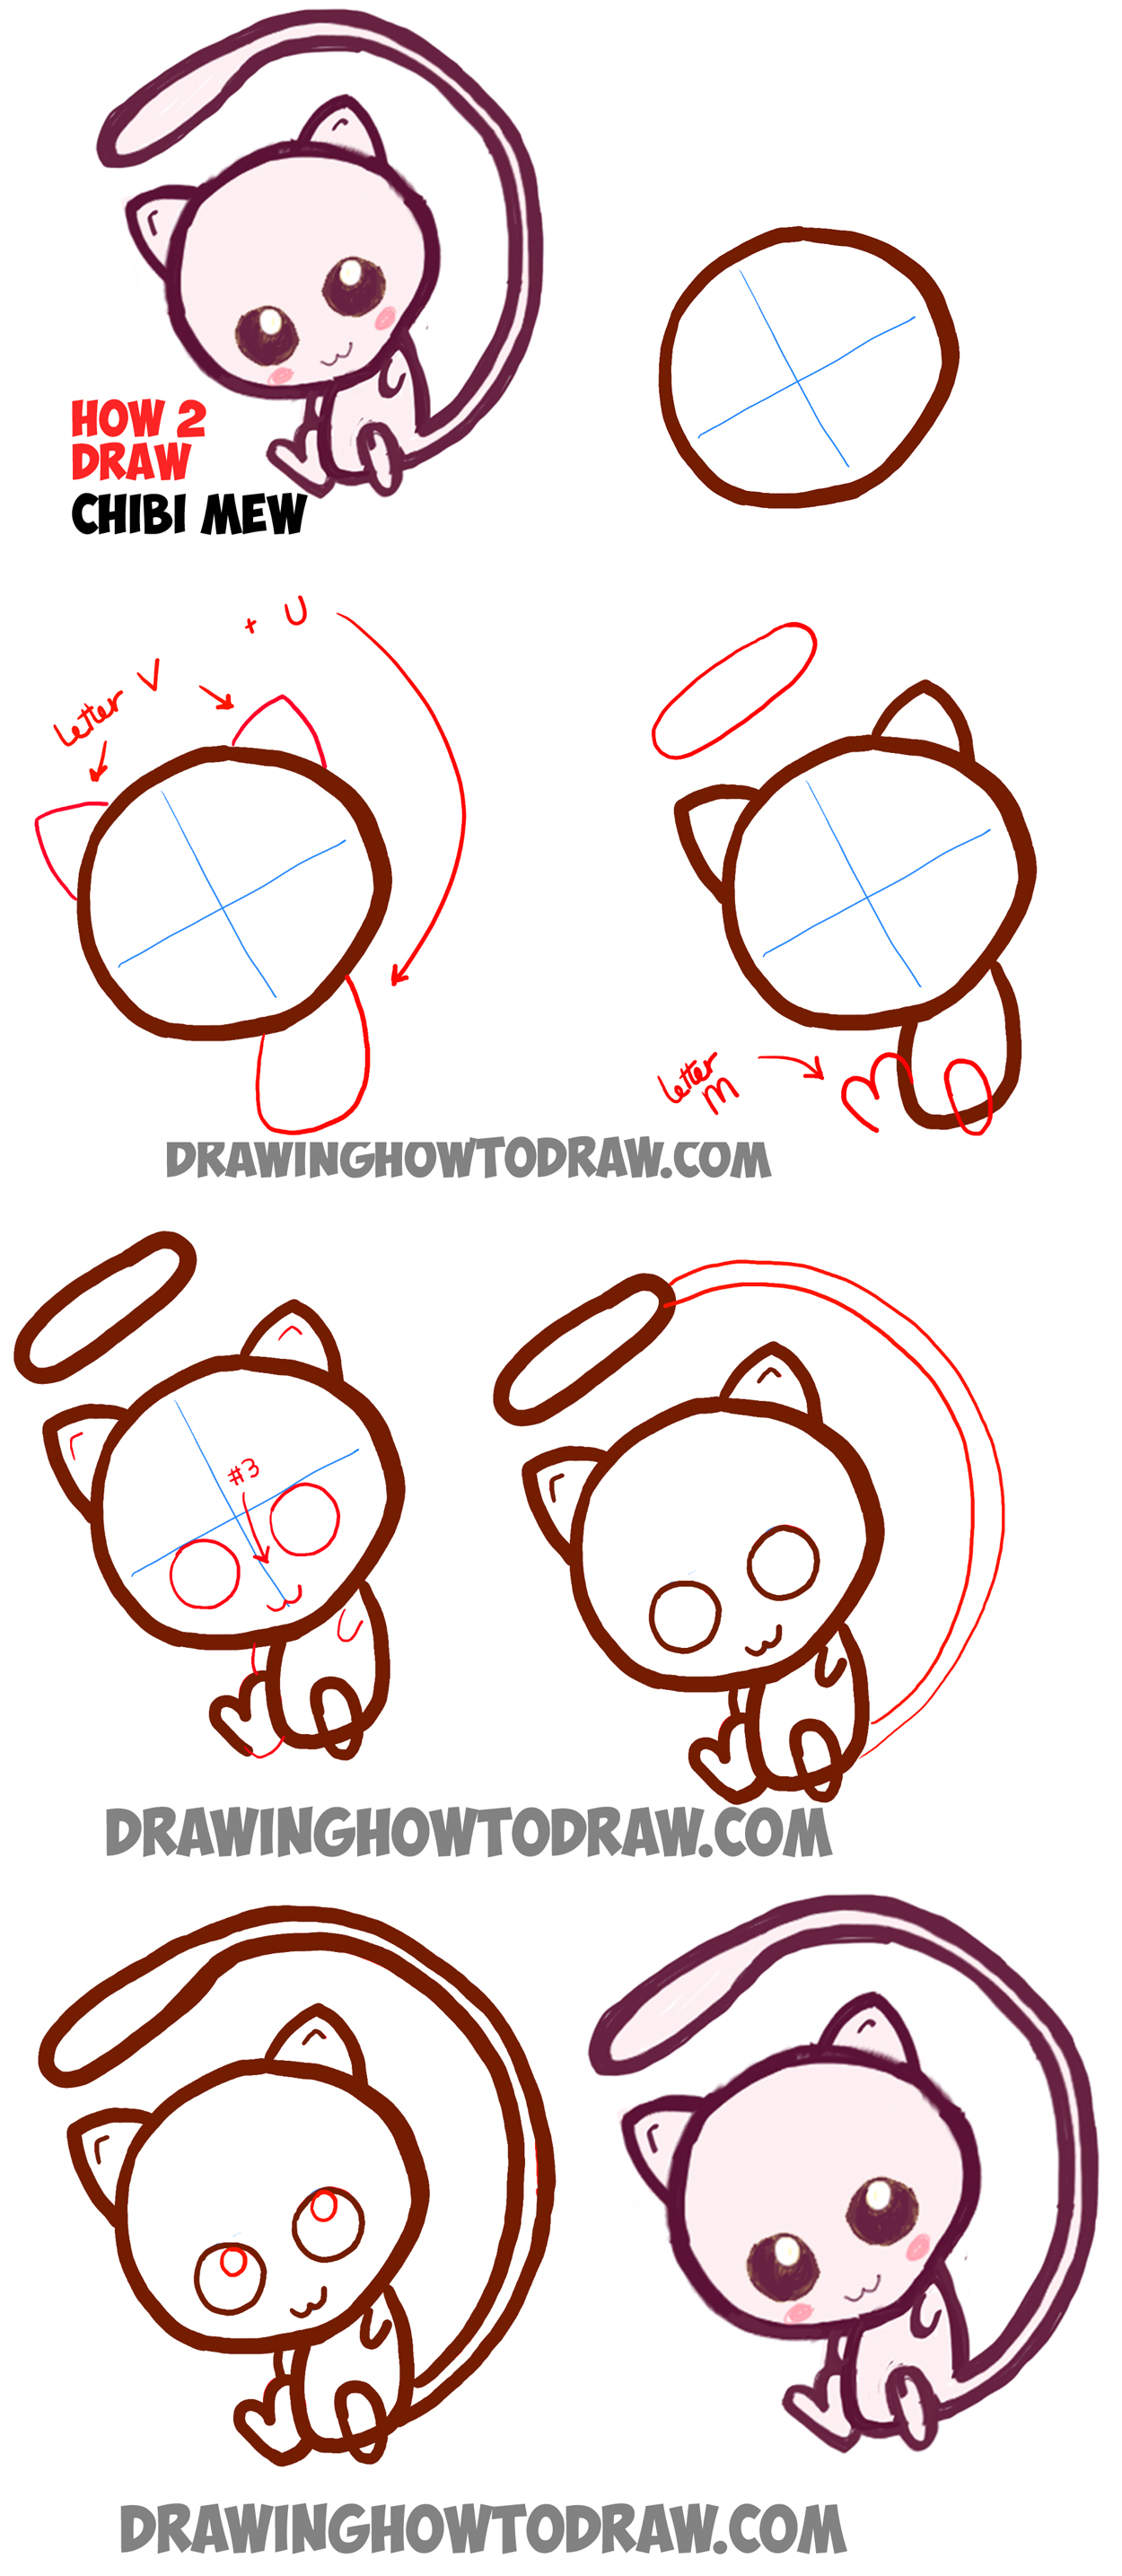 Easy Step By Step Drawing Instructions For How To Draw Zombie Bowser  Zombie Bowser as well Draw Cute Cartoon Boy Kid Thumb Abc Easy Step Step Drawing Tutorial Kids further Unicorn Valentine Card Box also Draw Kawaii Chibi Rapunzel Disneys Tangled Easy Steps besides Draw Cute Baby Chibi Mew Pokemon Easy Step Step Drawing Tutorial. on step by instructions to draw a unicorn with